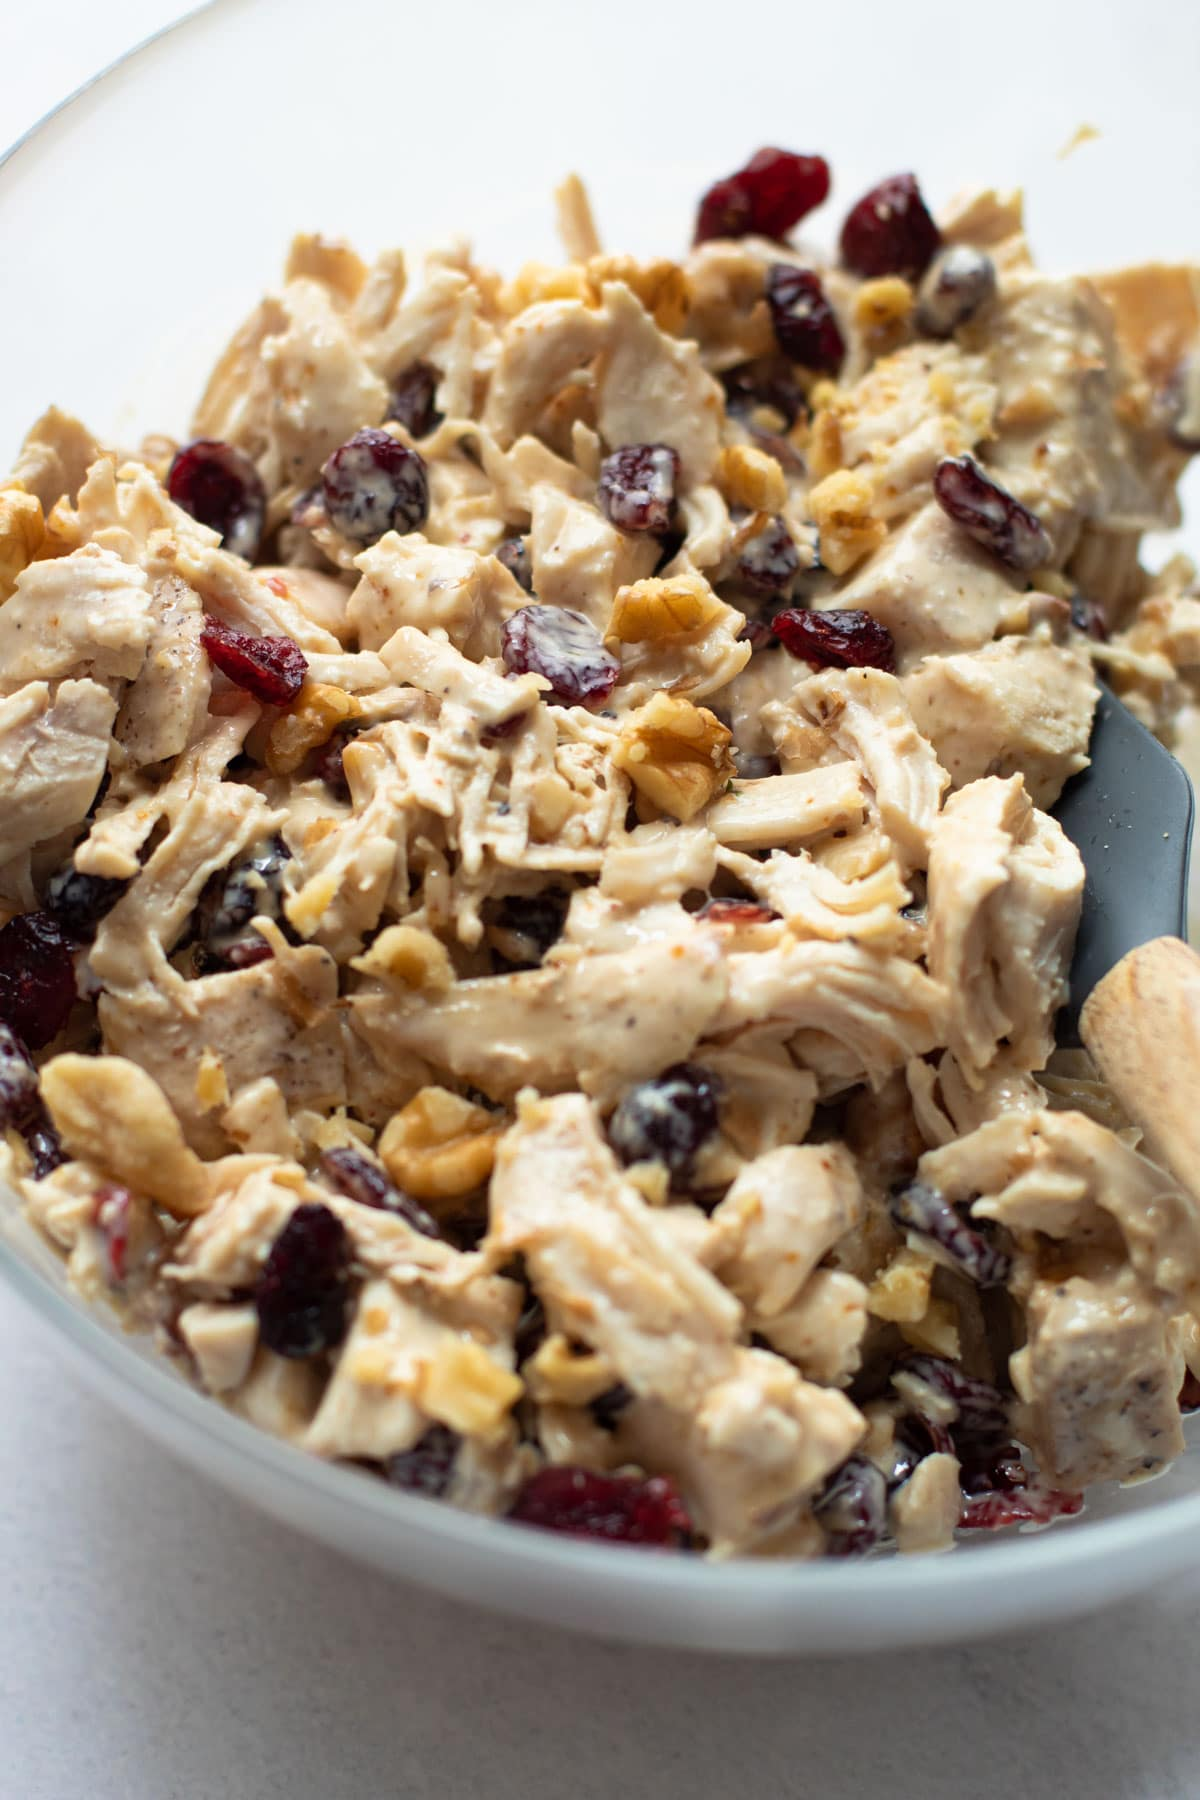 Chicken salad with walnuts and cranberries in a bowl.